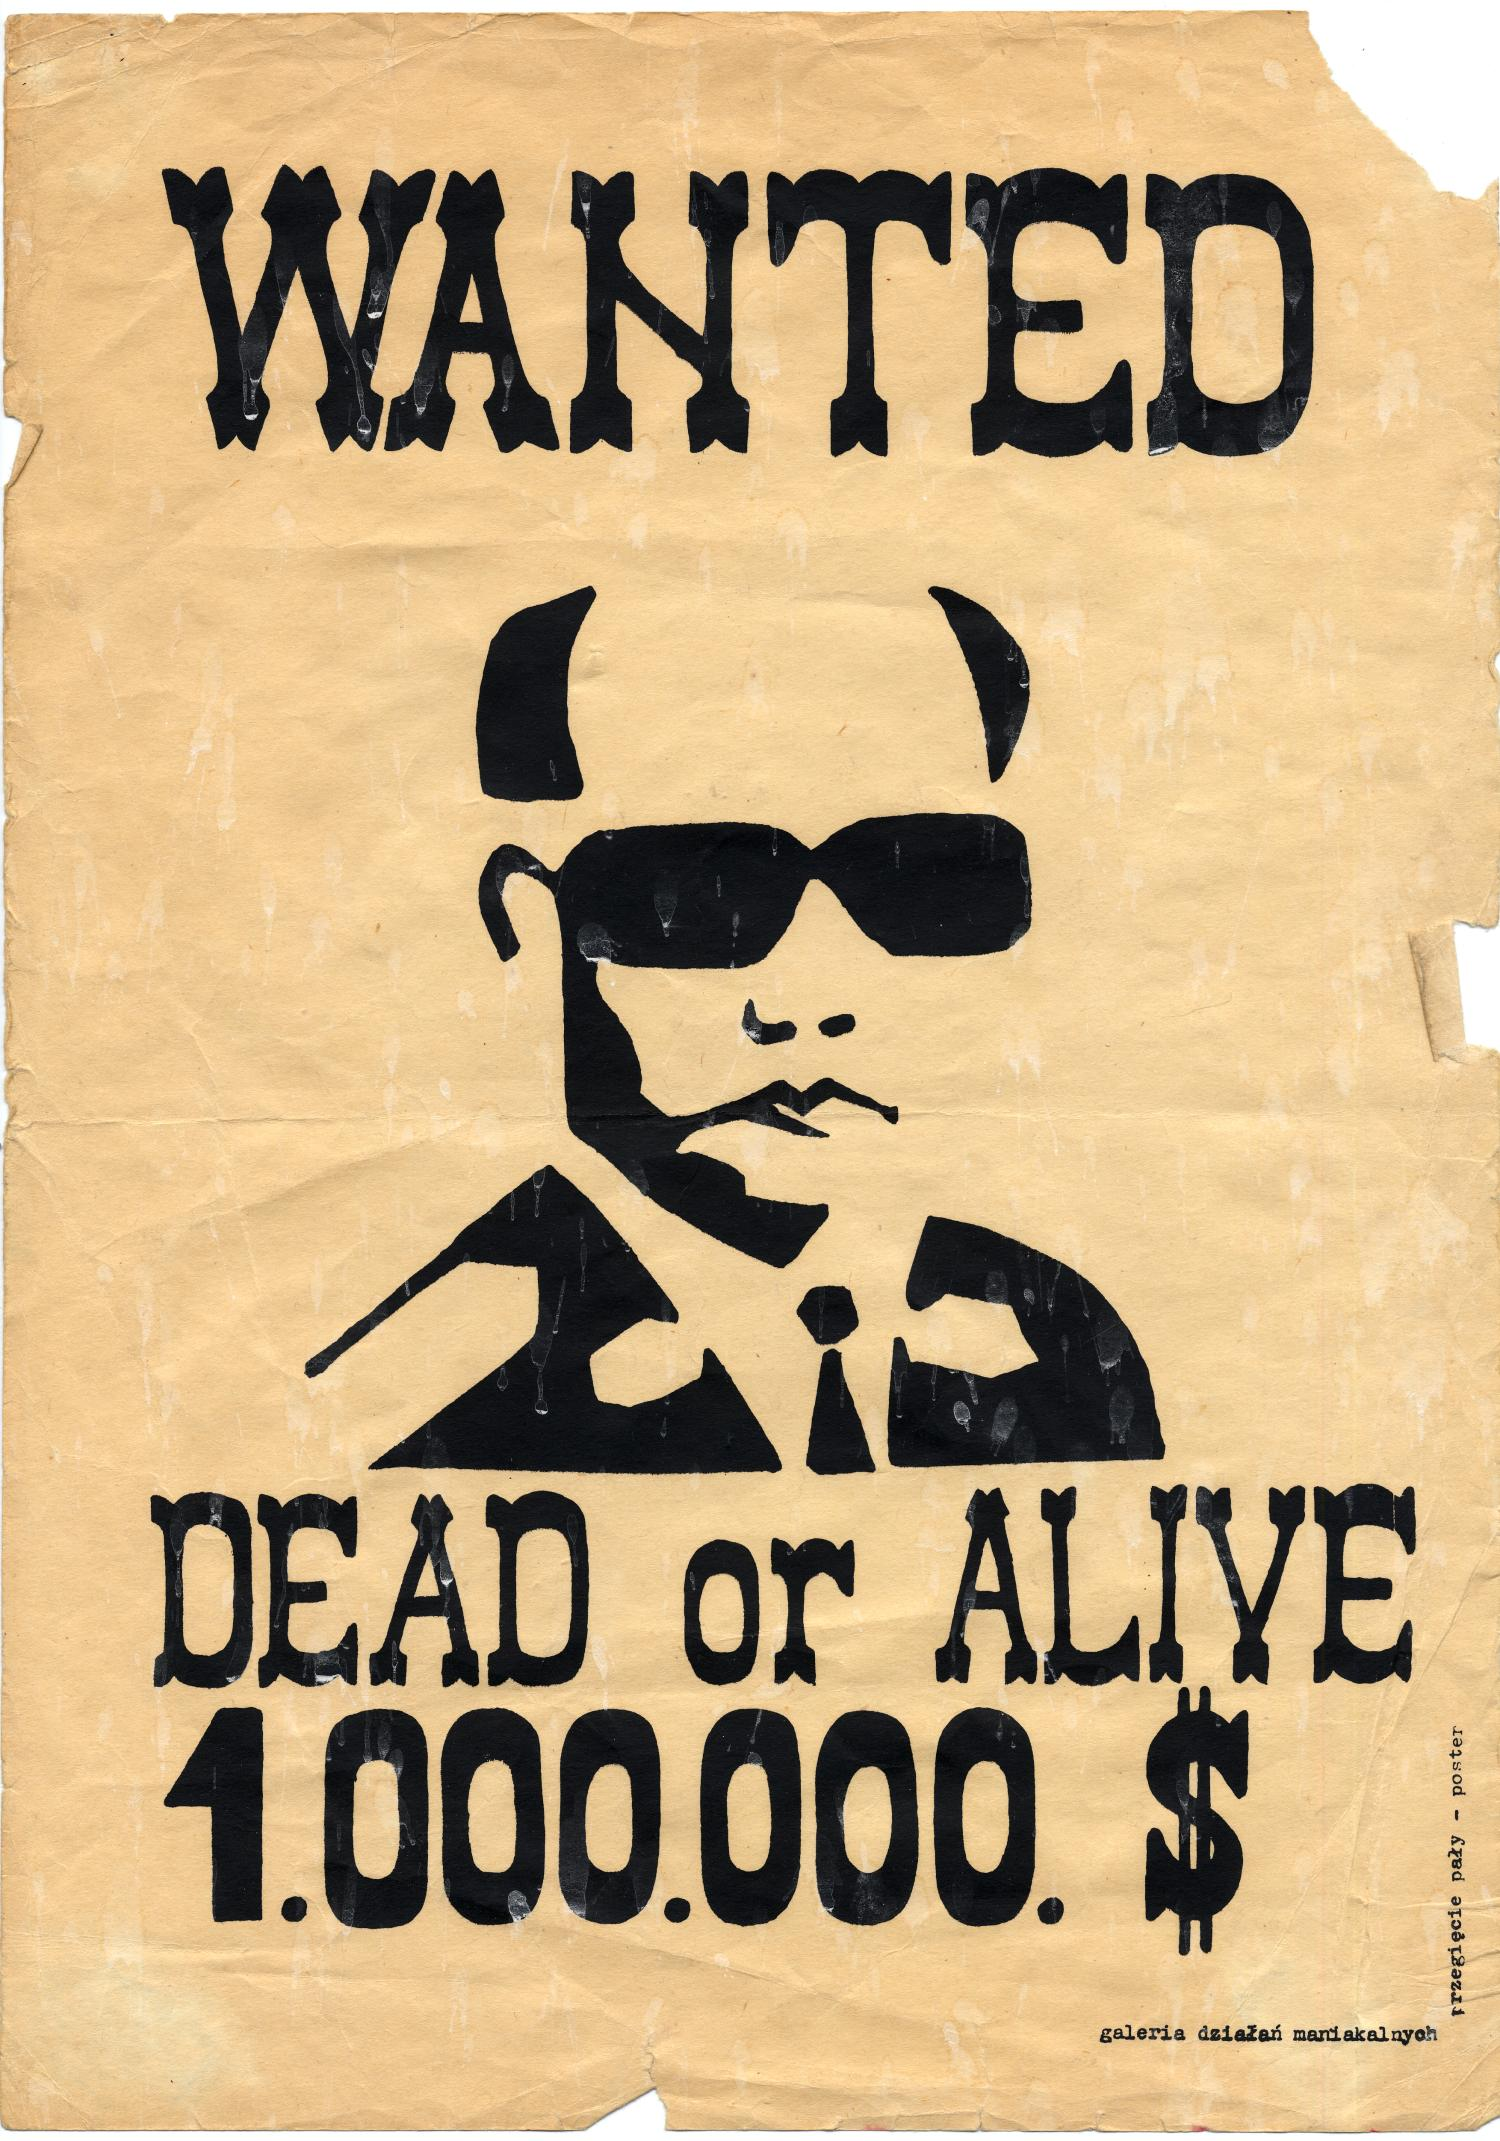 Wanted: Dead or Alive, 1.000.000. $                                                                                                      [Sequence #]: 1 of 1